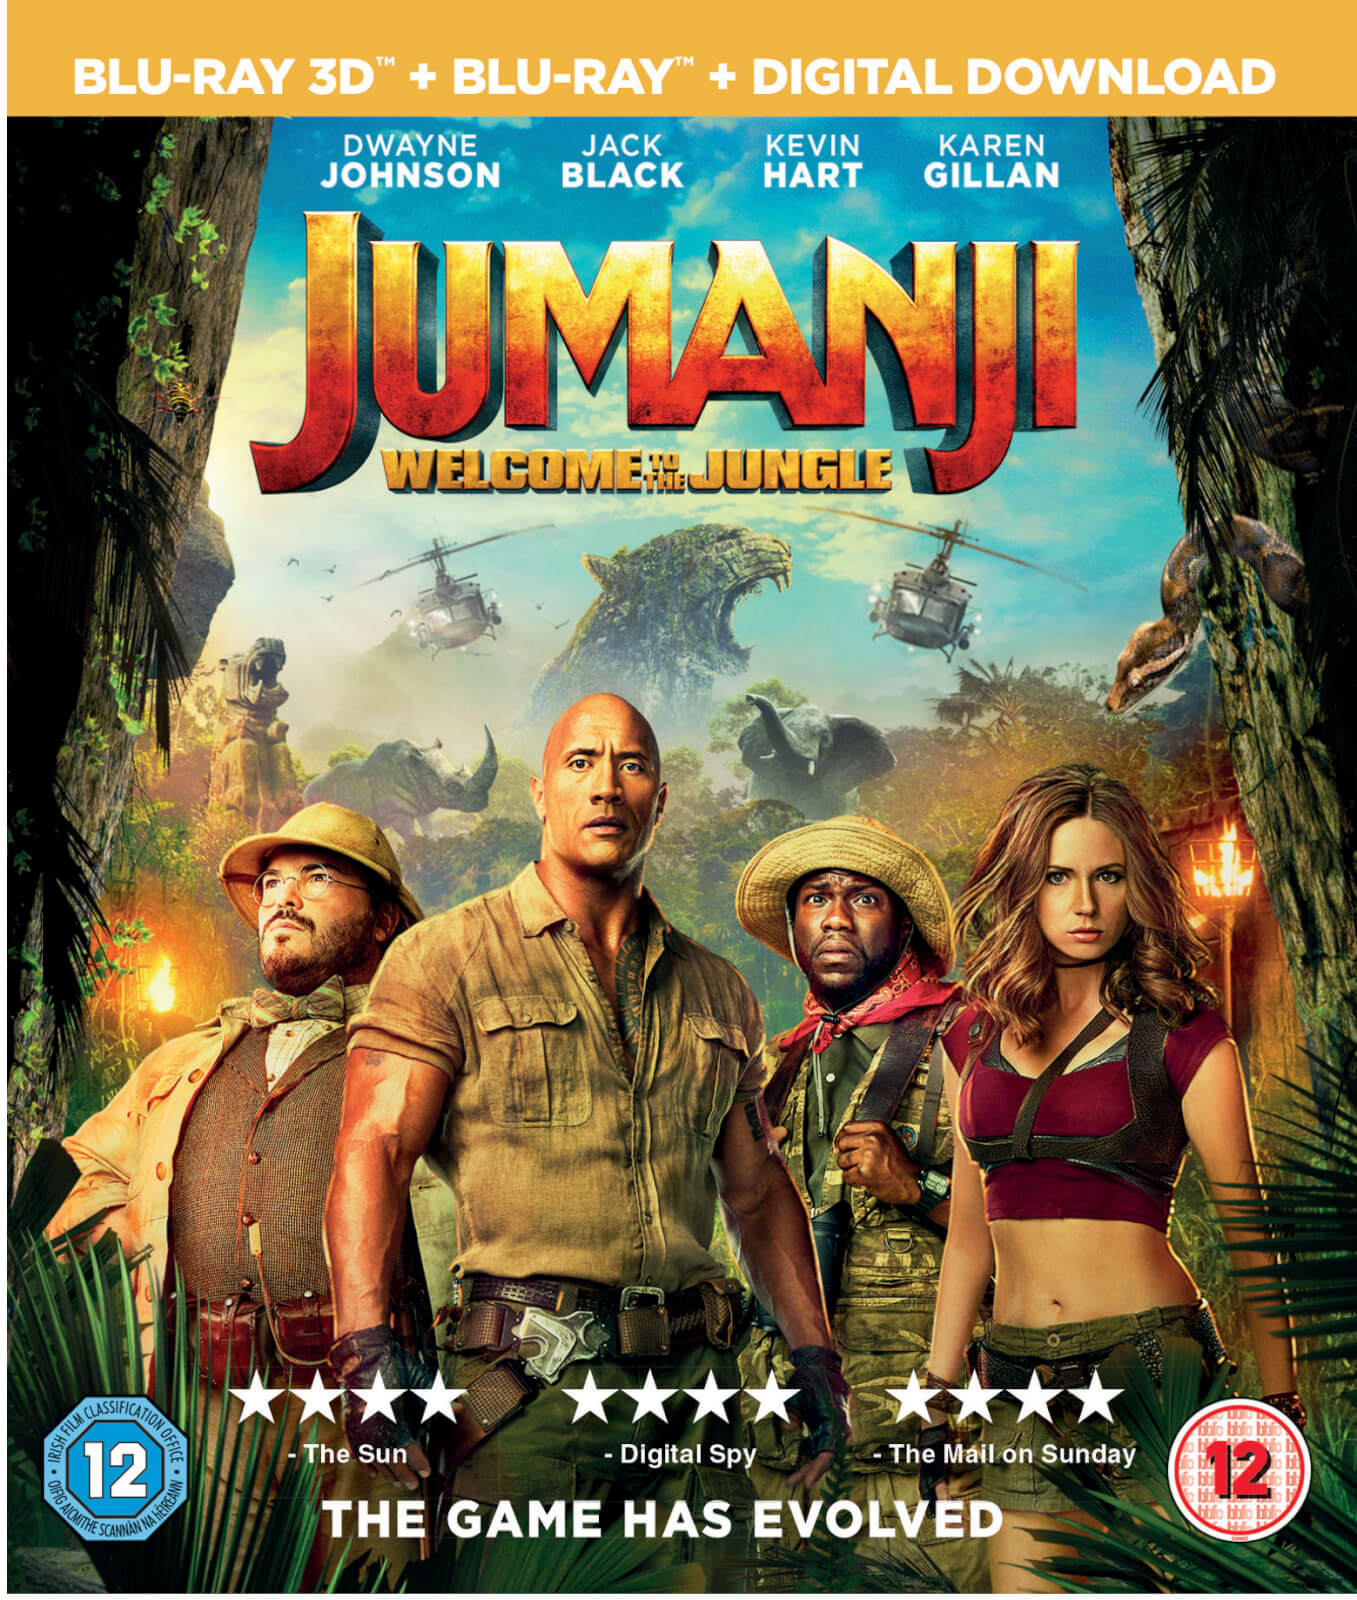 Jumanji: Welcome To The Jungle 3D (Includes 2D Version)